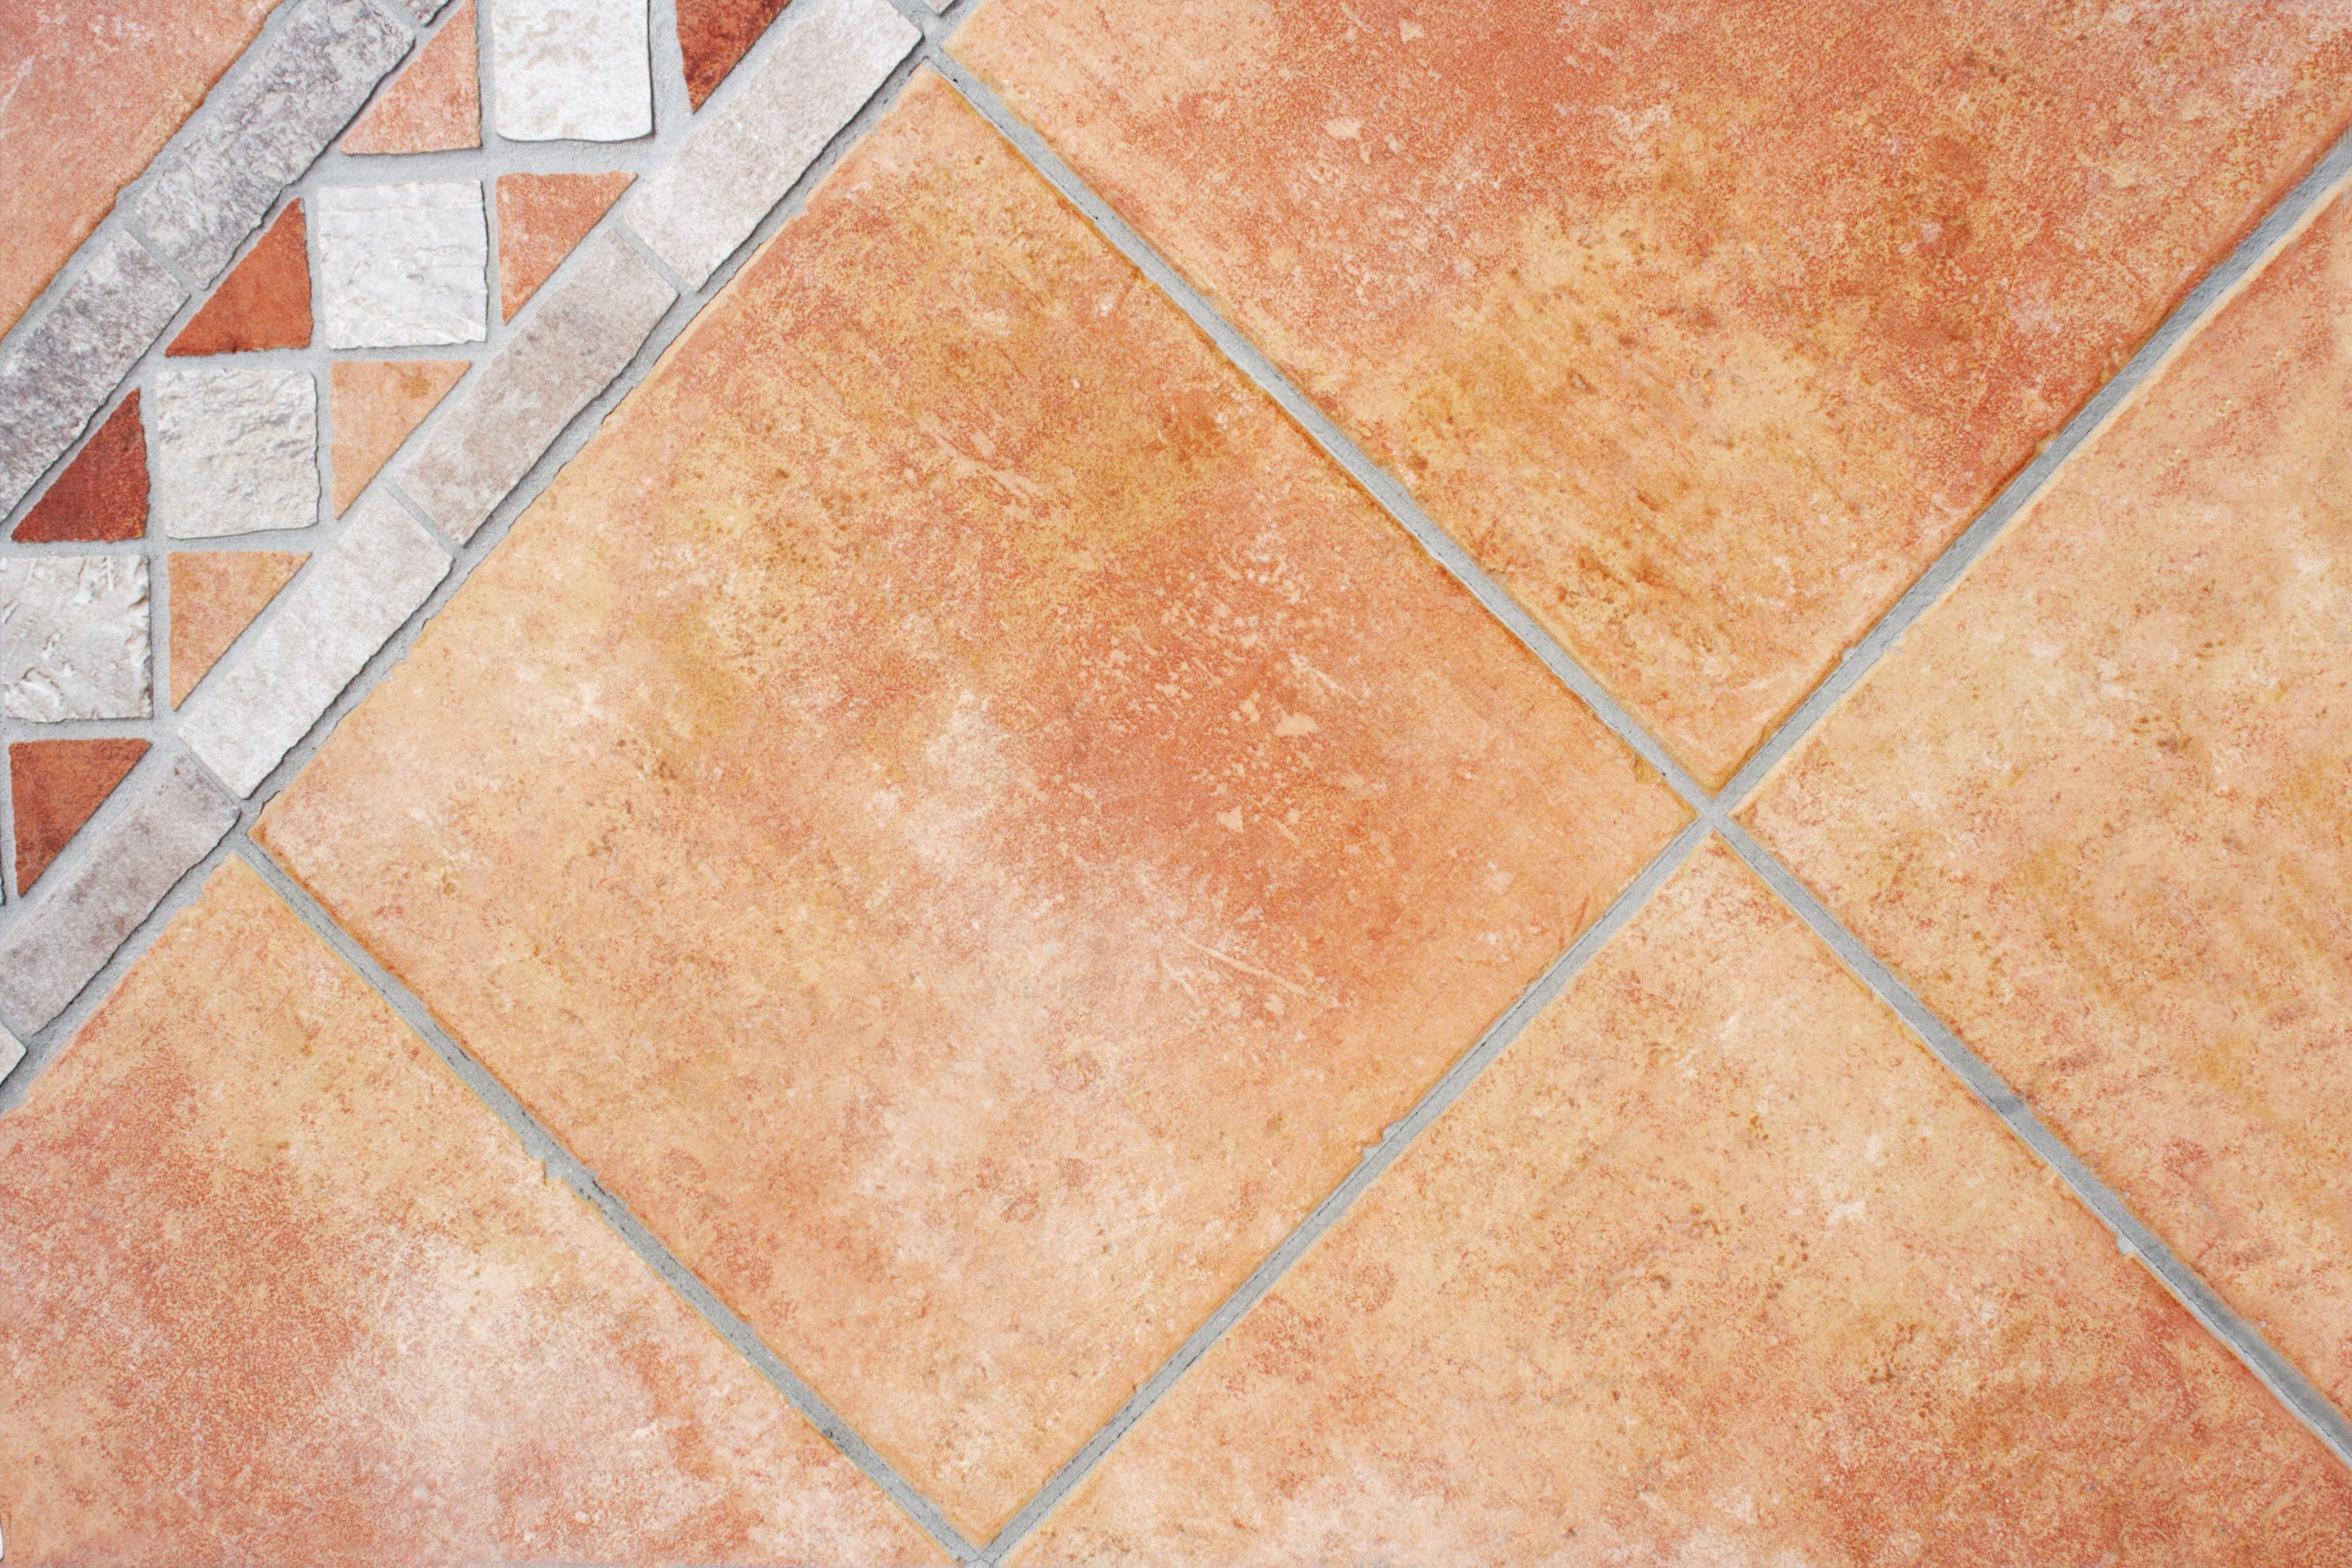 3 ways to give your flooring a rustic tuscan look painting a faux terra cotta floor on concrete dailygadgetfo Image collections